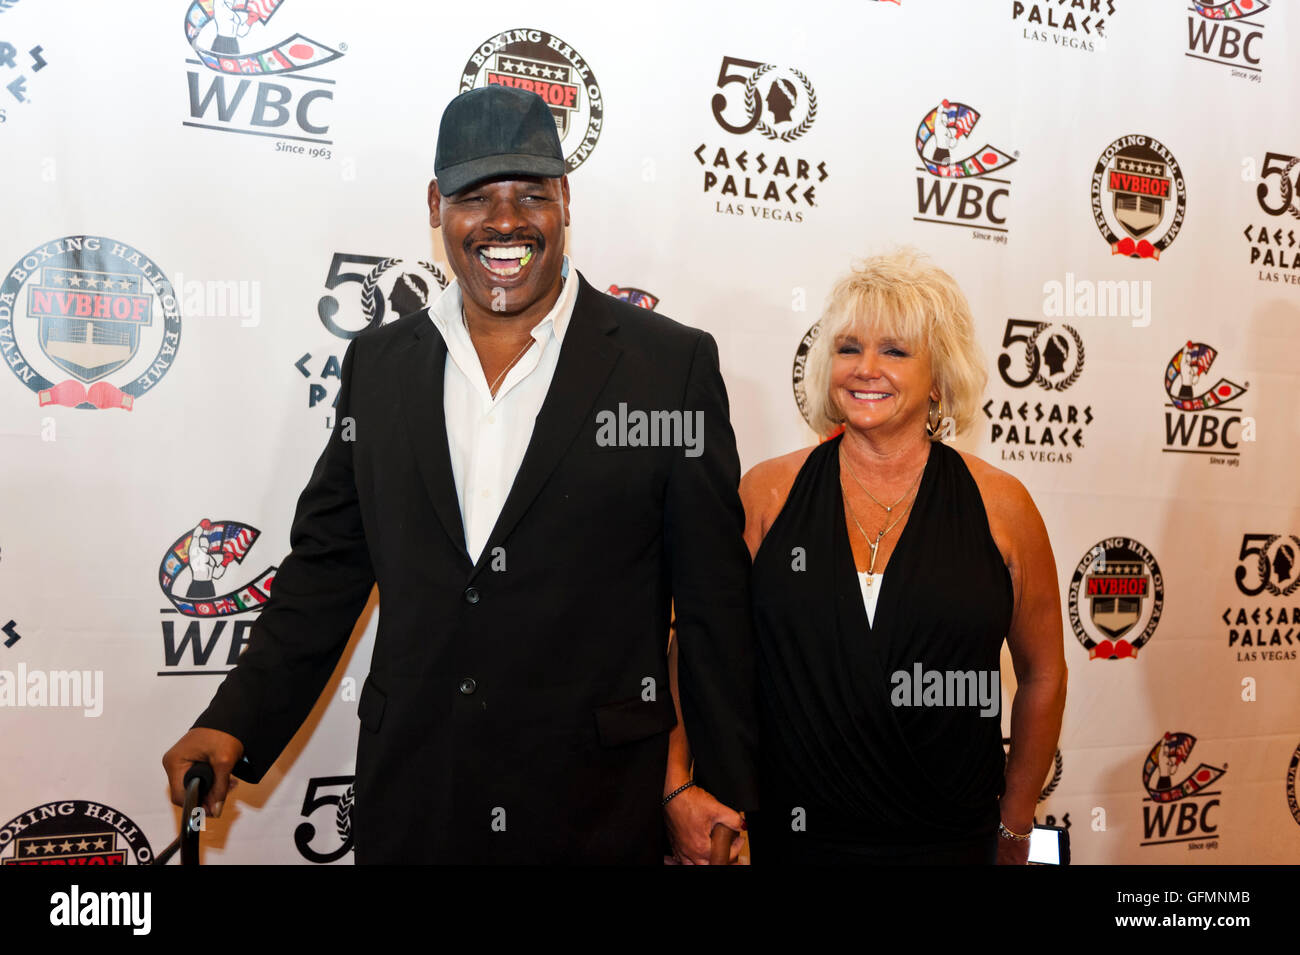 Las Vegas, Nevada, USA. 30th July, 2016. Leon Spinks on the red carpet at the 4th Annual Nevada Boxing Hall of Fame - Stock Image